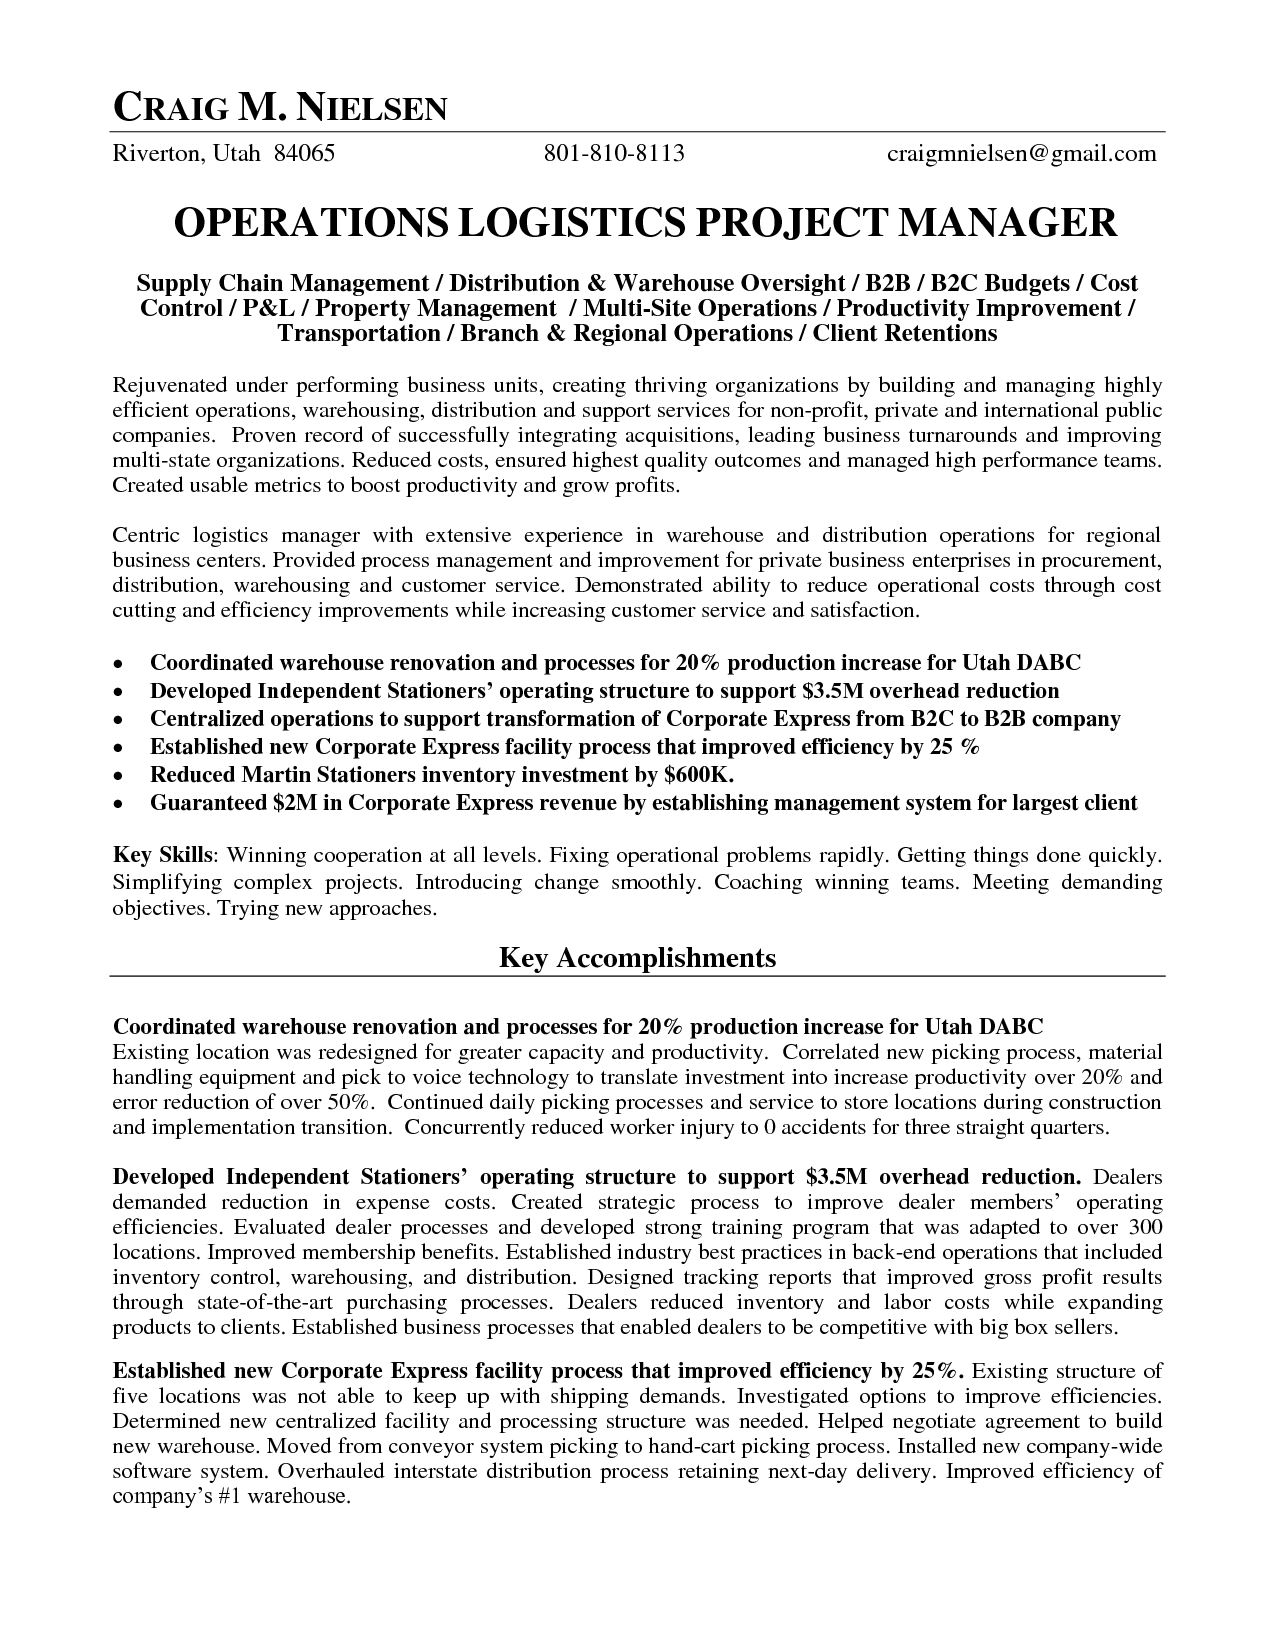 logistics operations manager resume operations logistics project manager in salt lake city ut resume craig